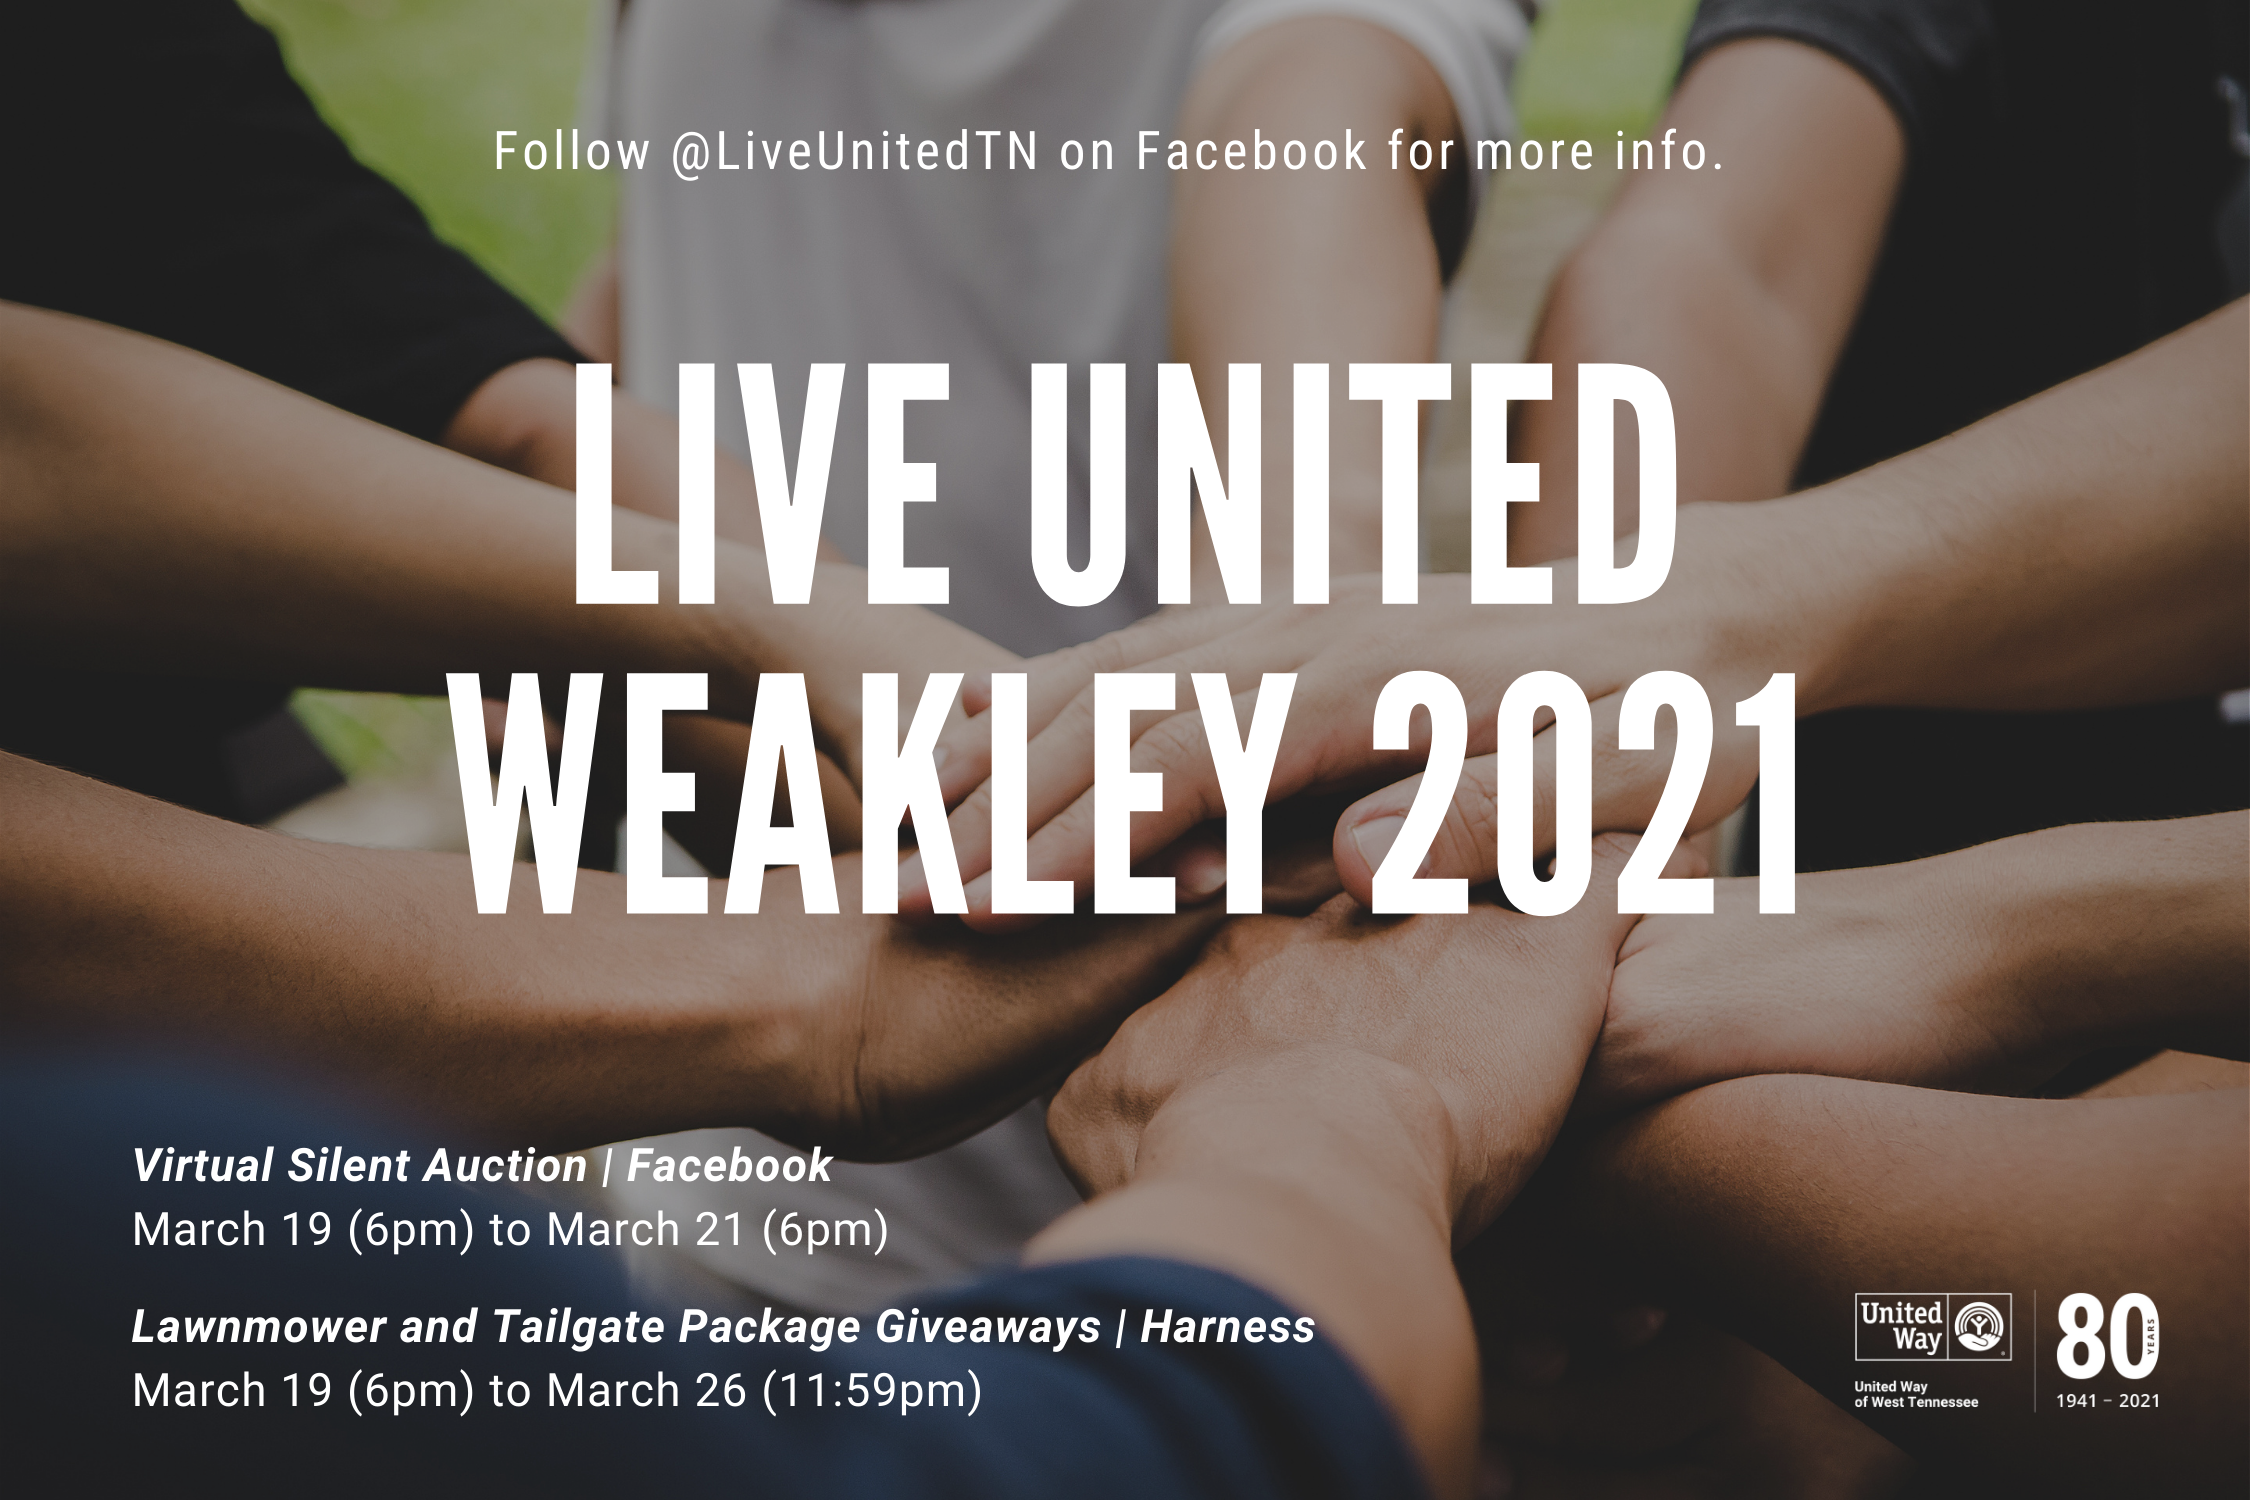 LIVE UNITED Weakley County: 2021 Virtual Silent Auction and Major Giveaways